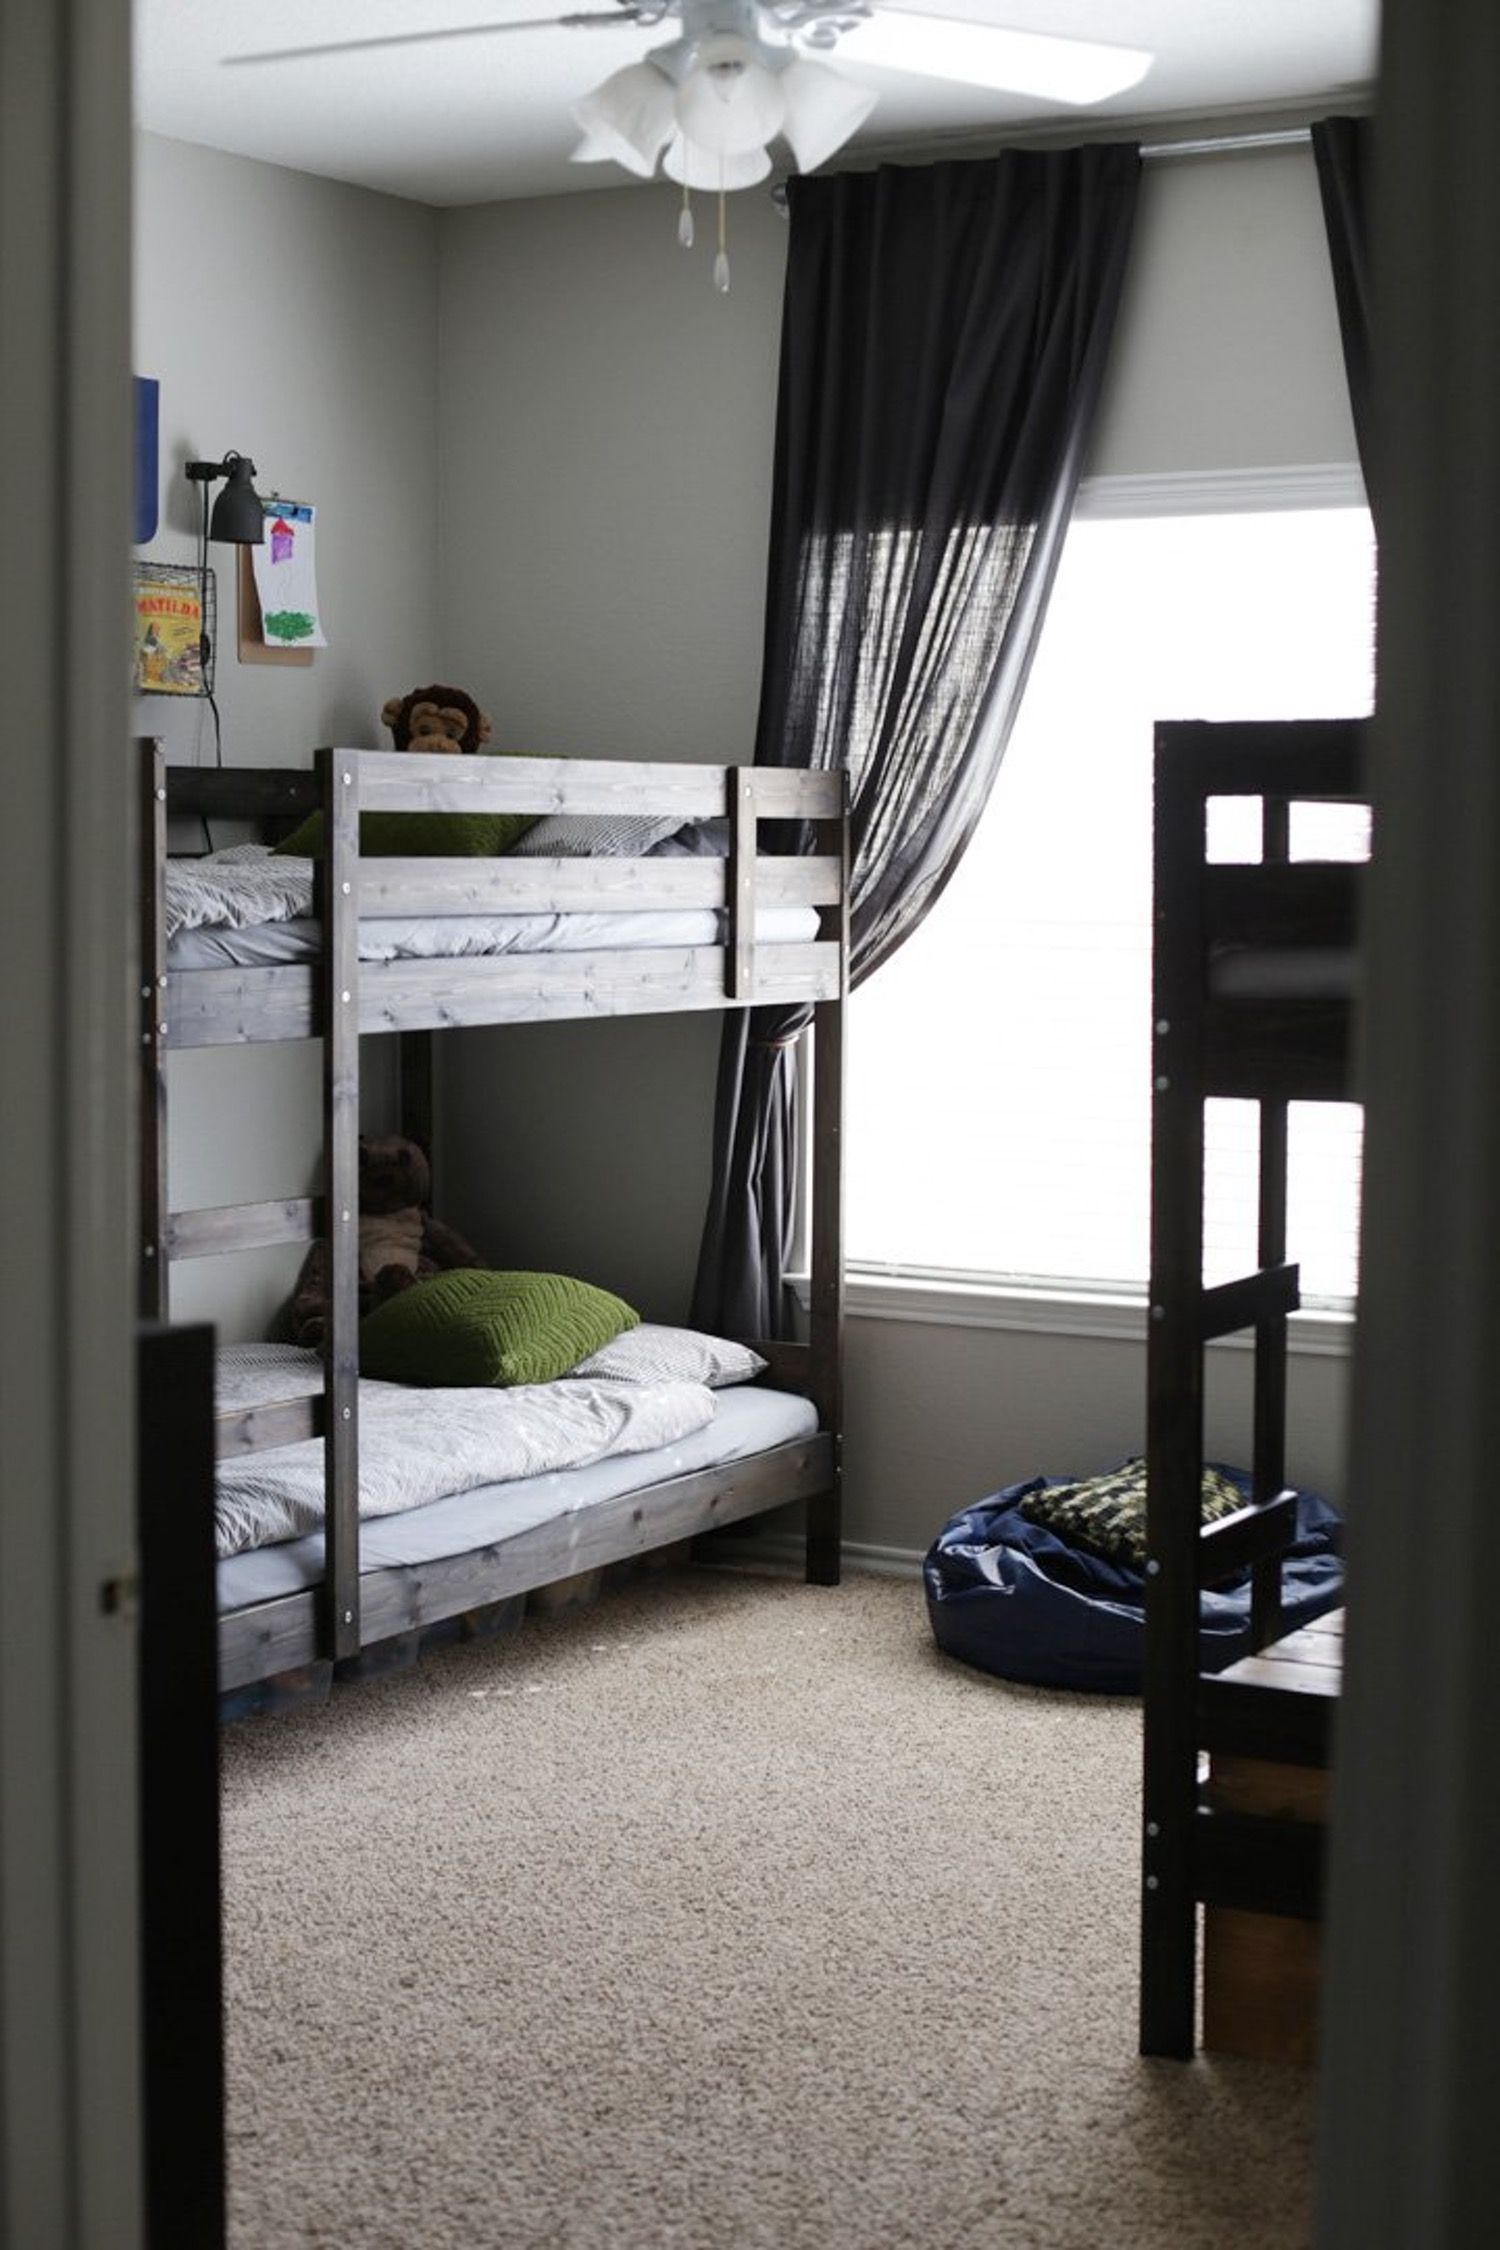 A Genius Parenting Move for Small Space Living | Shared ...